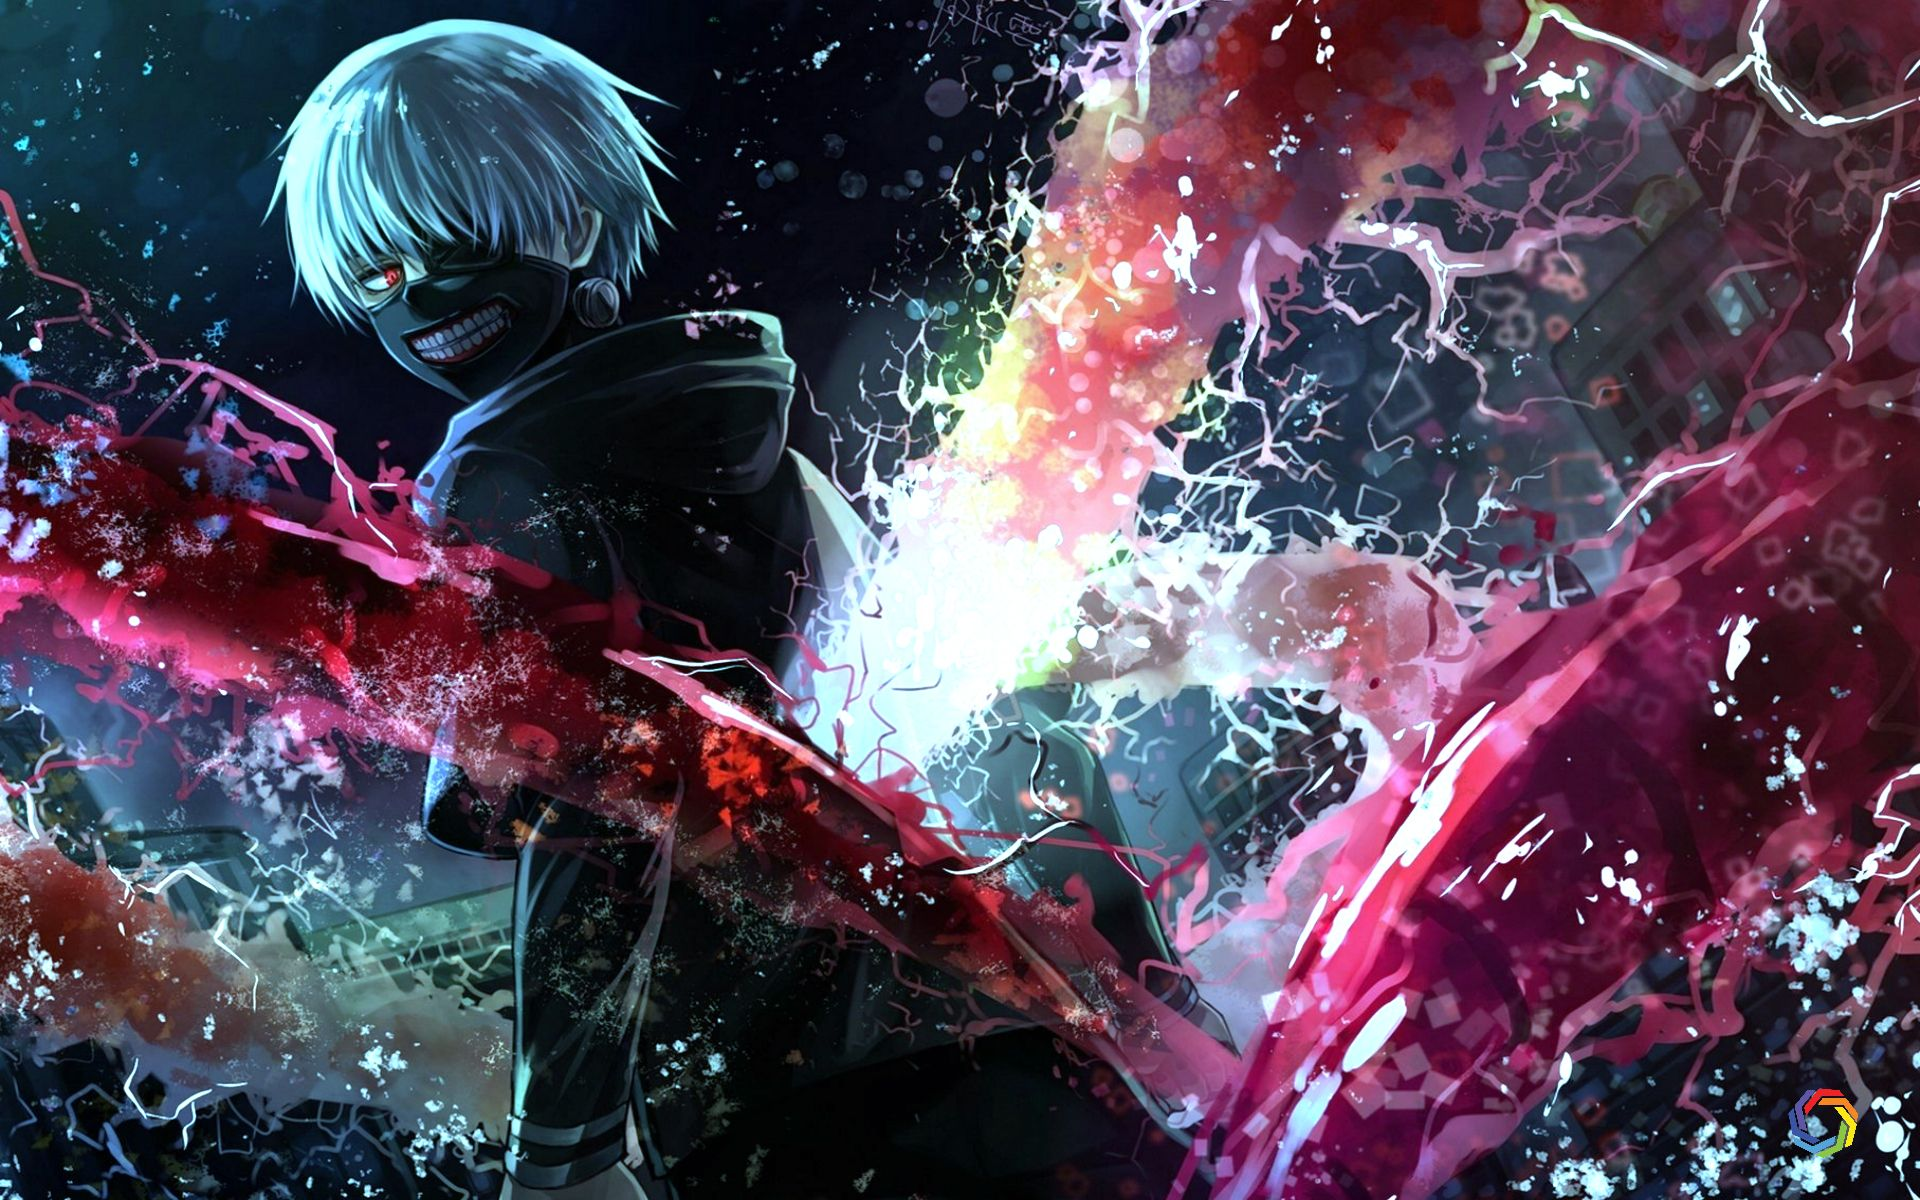 Download Best Desktop Anime Wallpaper Download Hd Widescreen Wallpaper Or High Definition Widescreen Wallpapers From The Belo Anime Nghệ Thuật Anime Nghệ Thuật